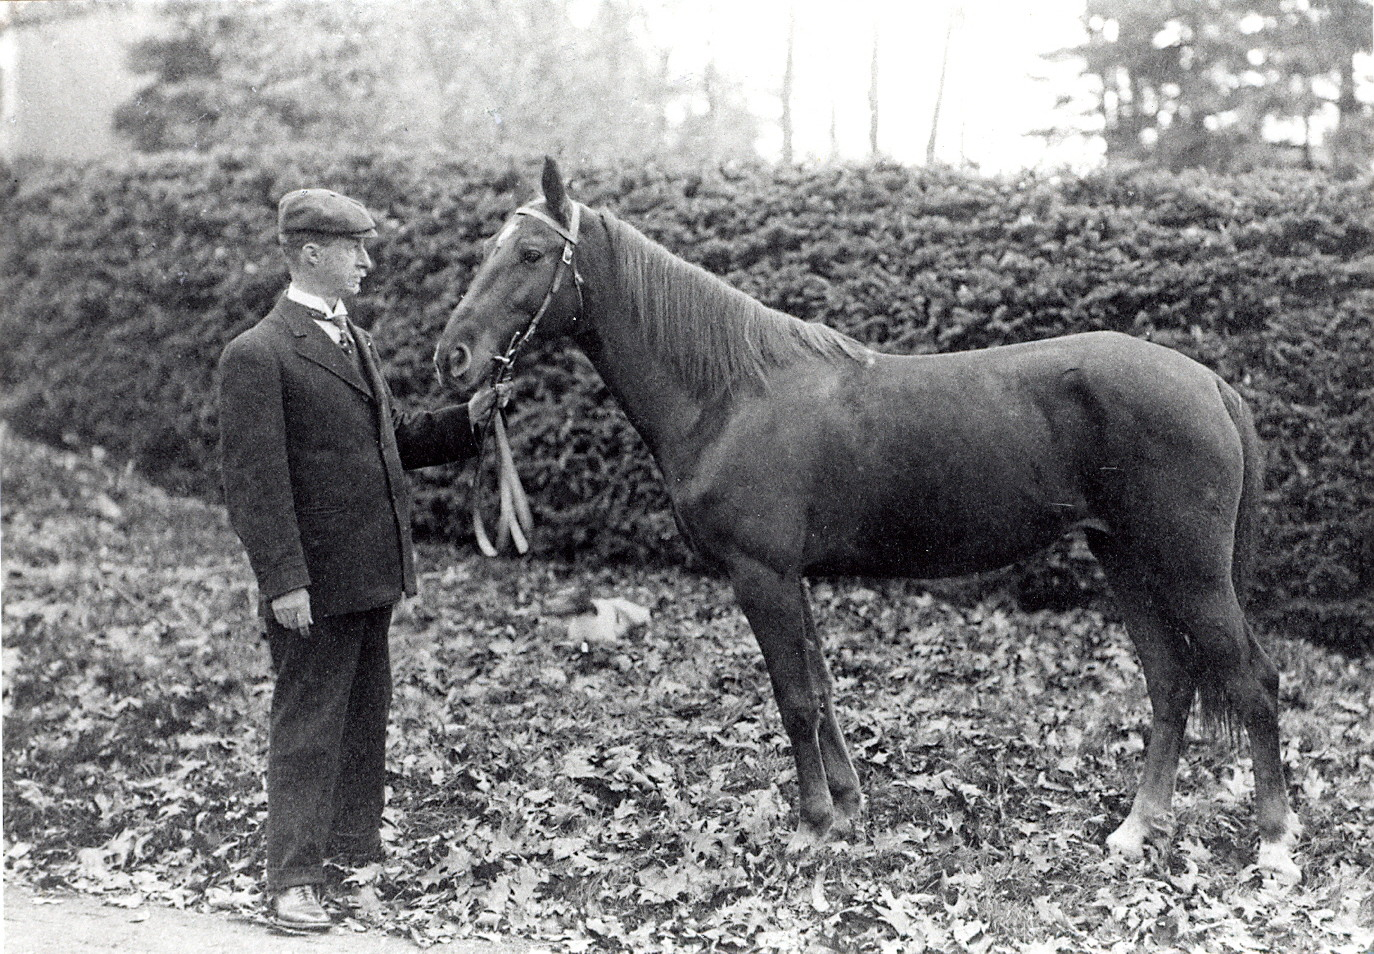 Black and white picture of a man dressed in a suit holding the reins of a smaller horse. They are standing in front of a cedar hedge on a gravel path.